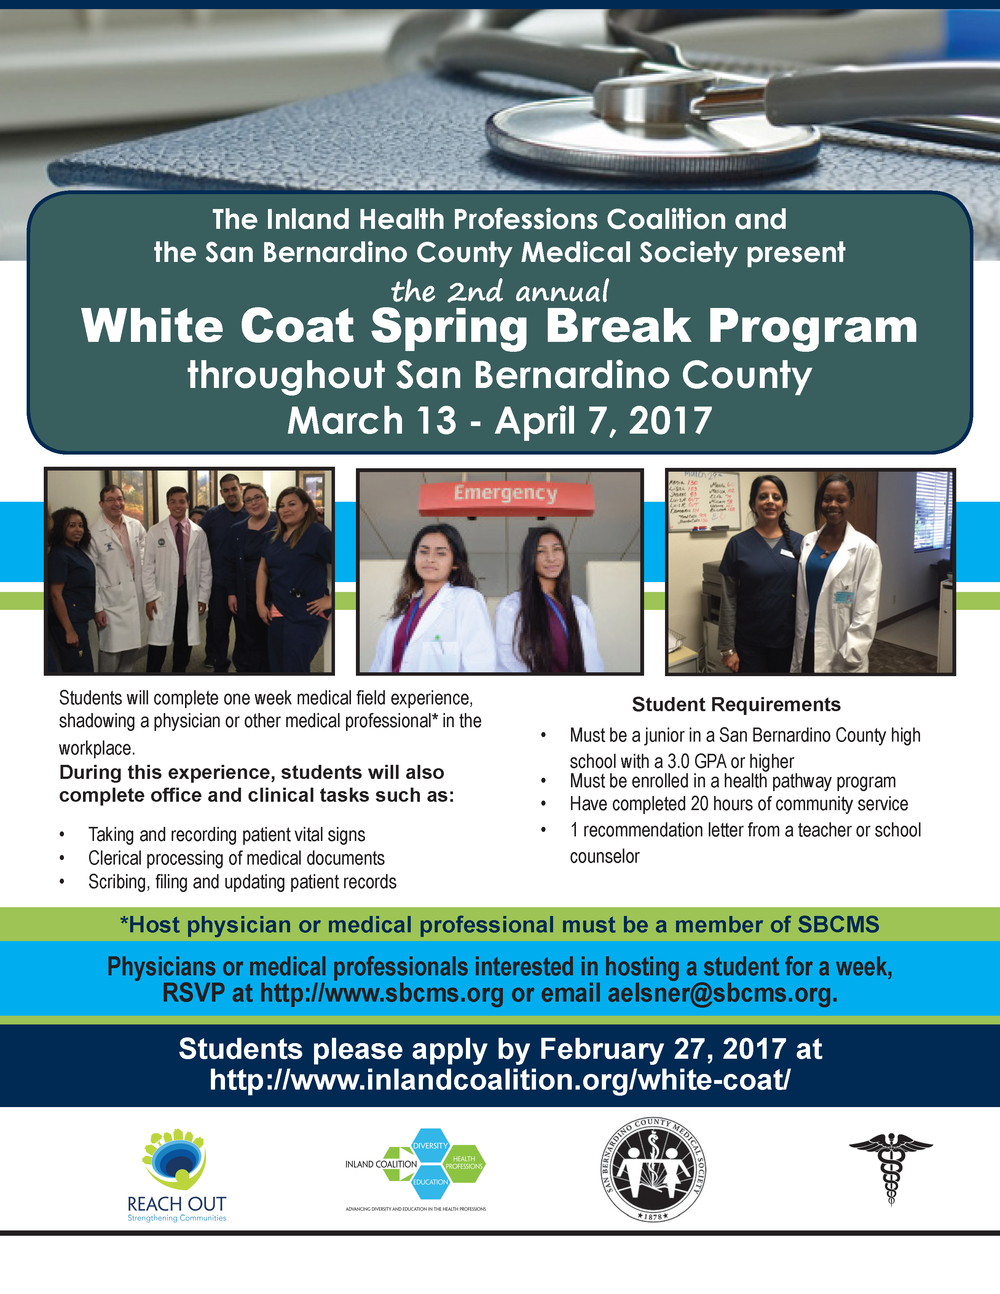 2017 White Coat Spring Break Flyer-FINAL_Page_1.png